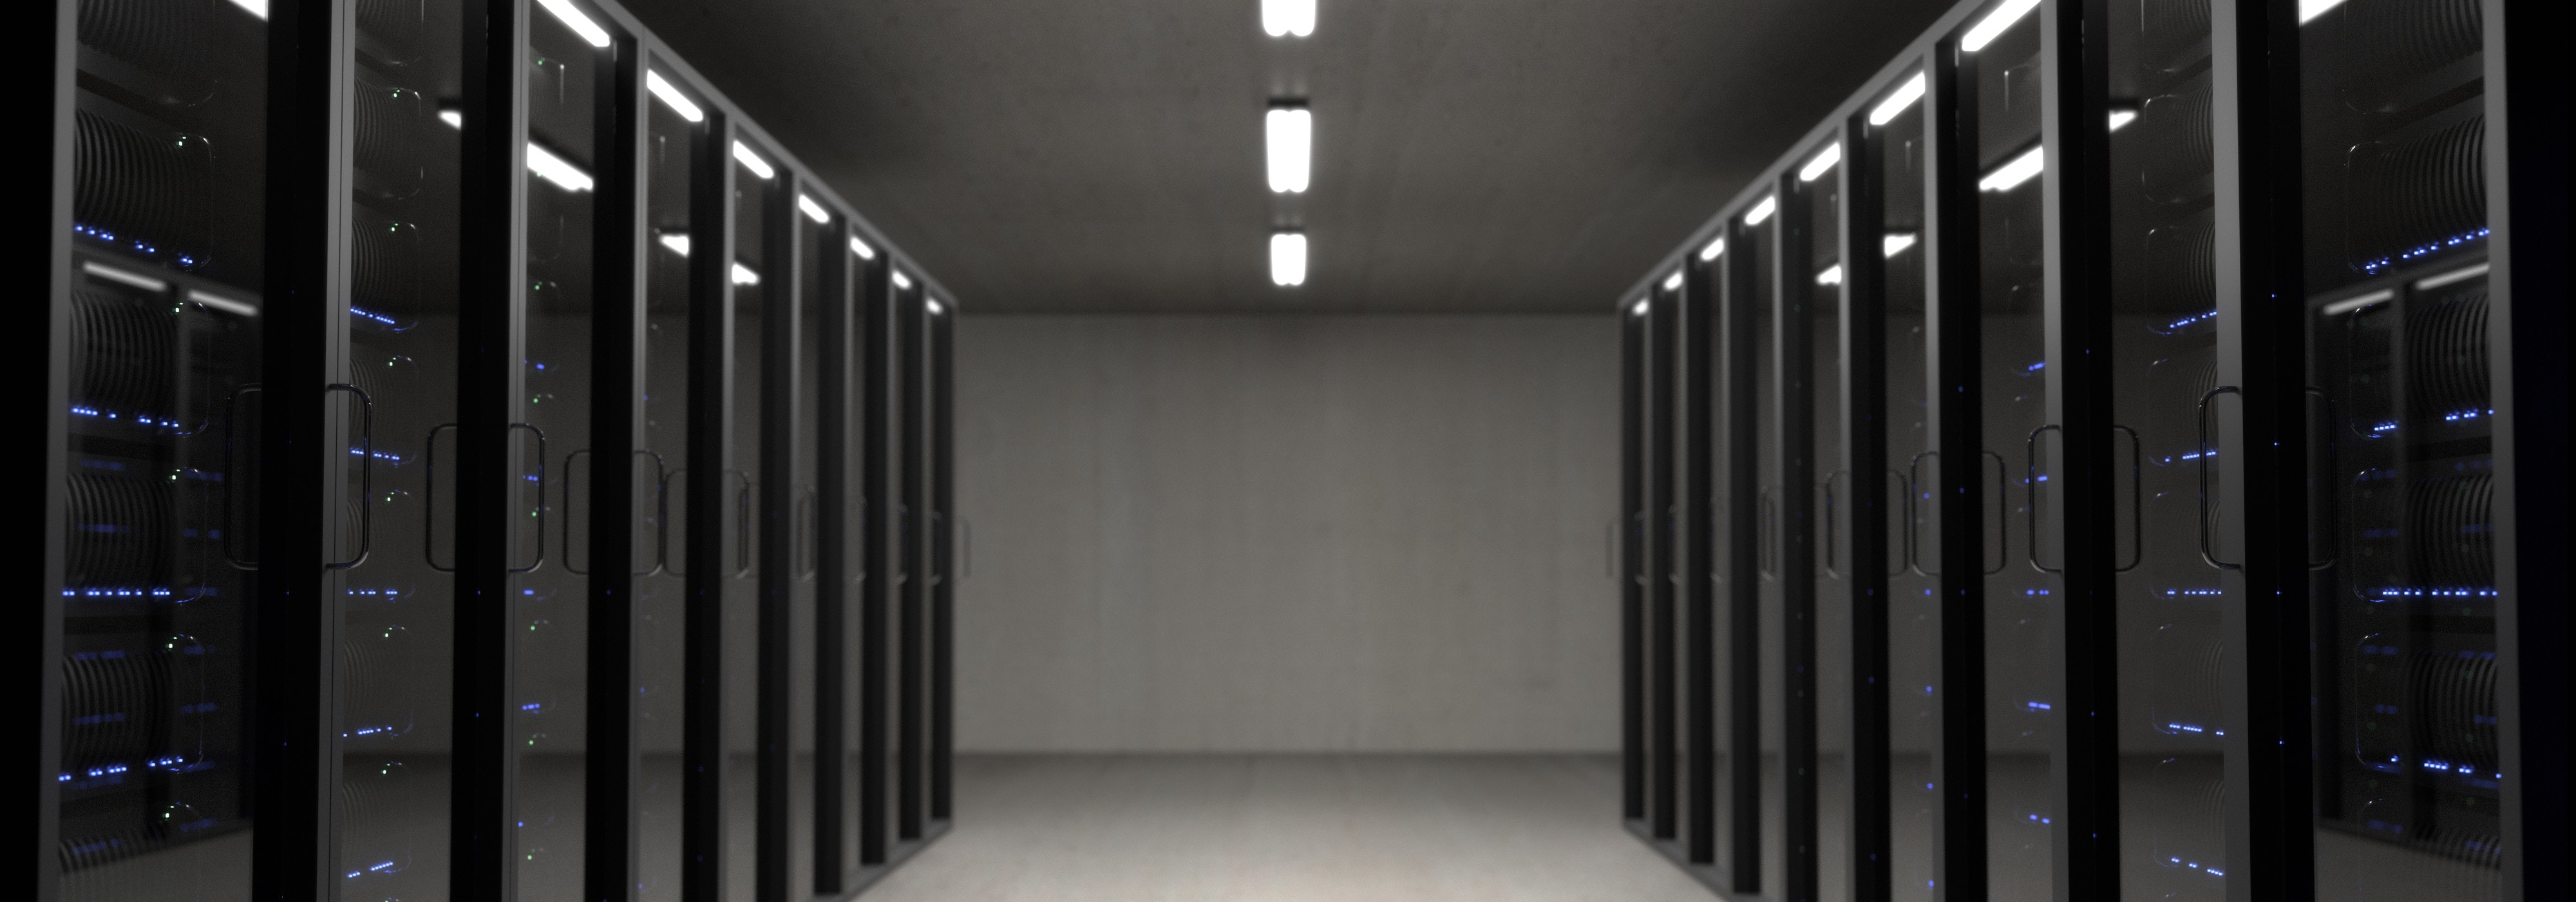 Storage Optimisation Services